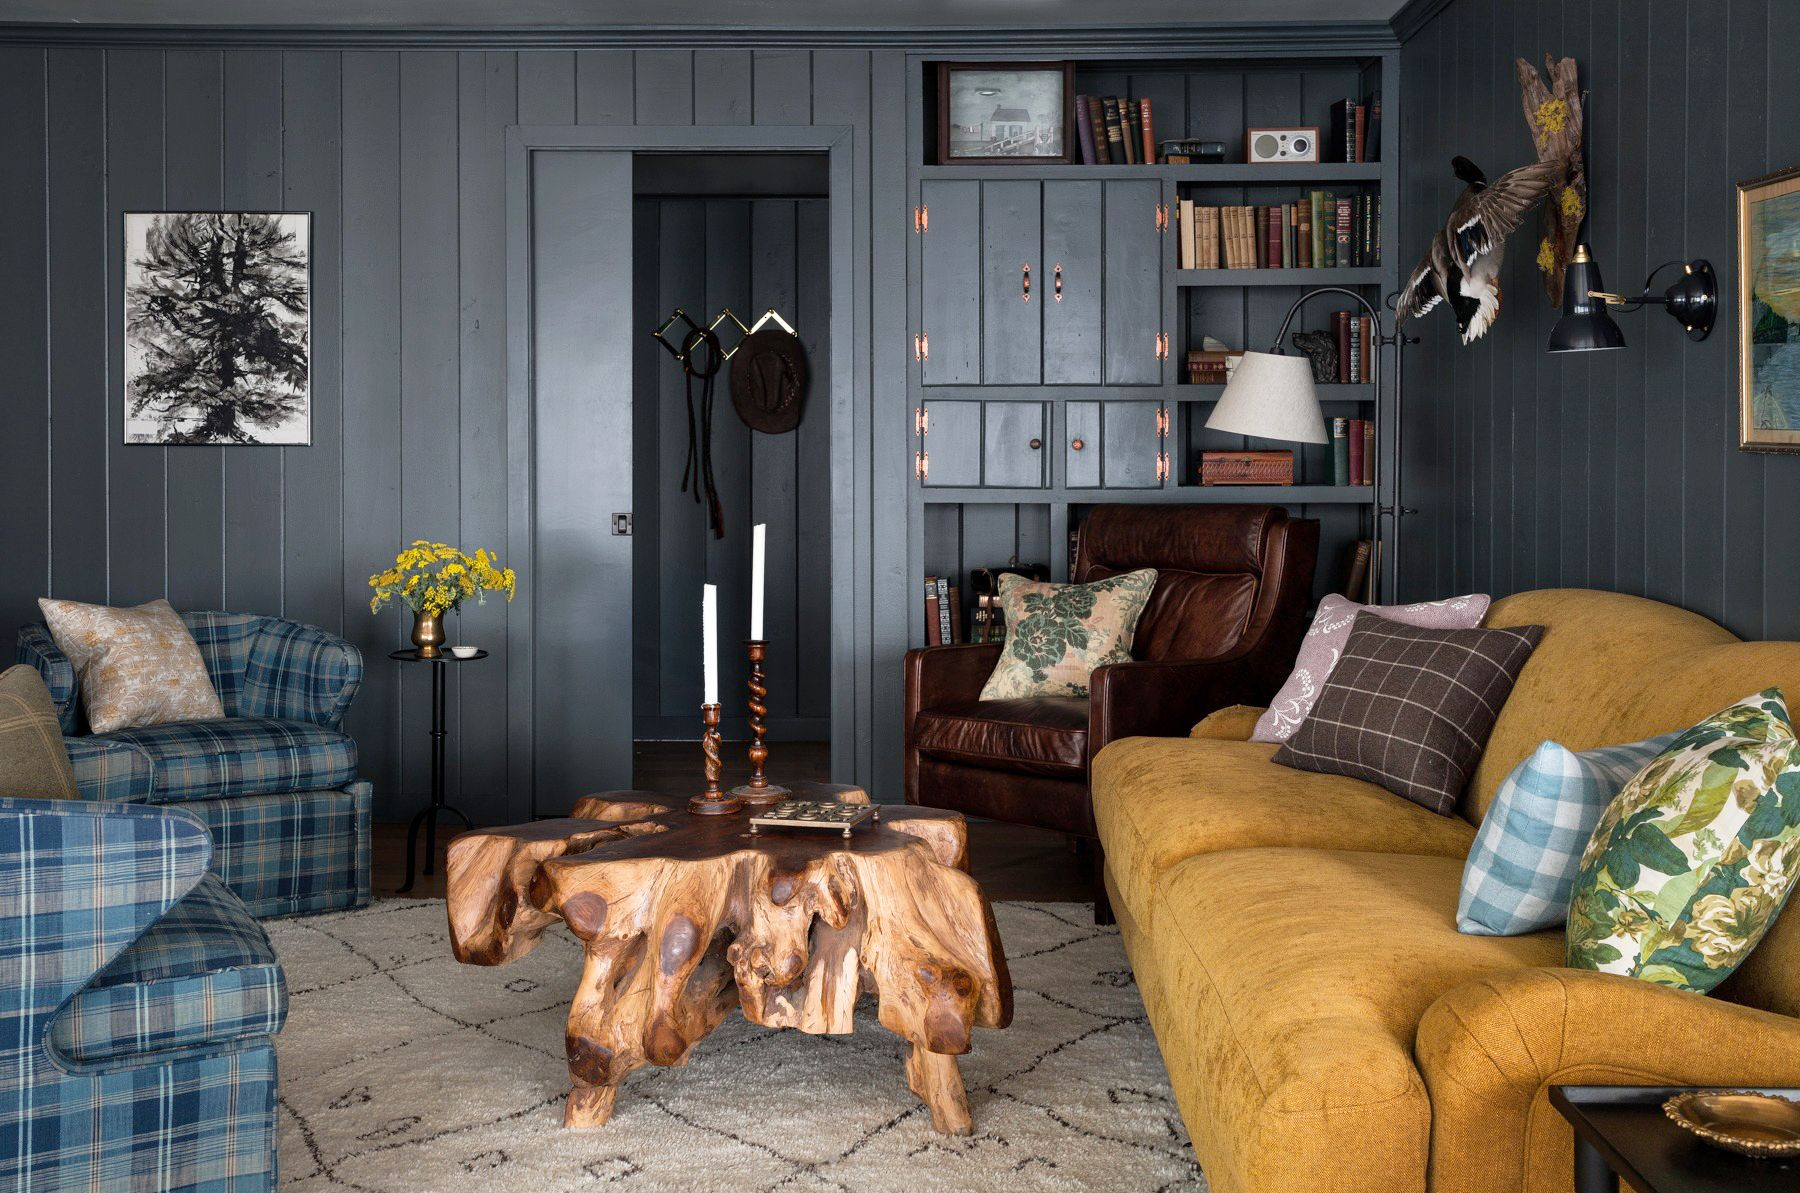 living room colors heidi caillier design seattle interior designer the cabin and the snug modern traditional dark walls living room